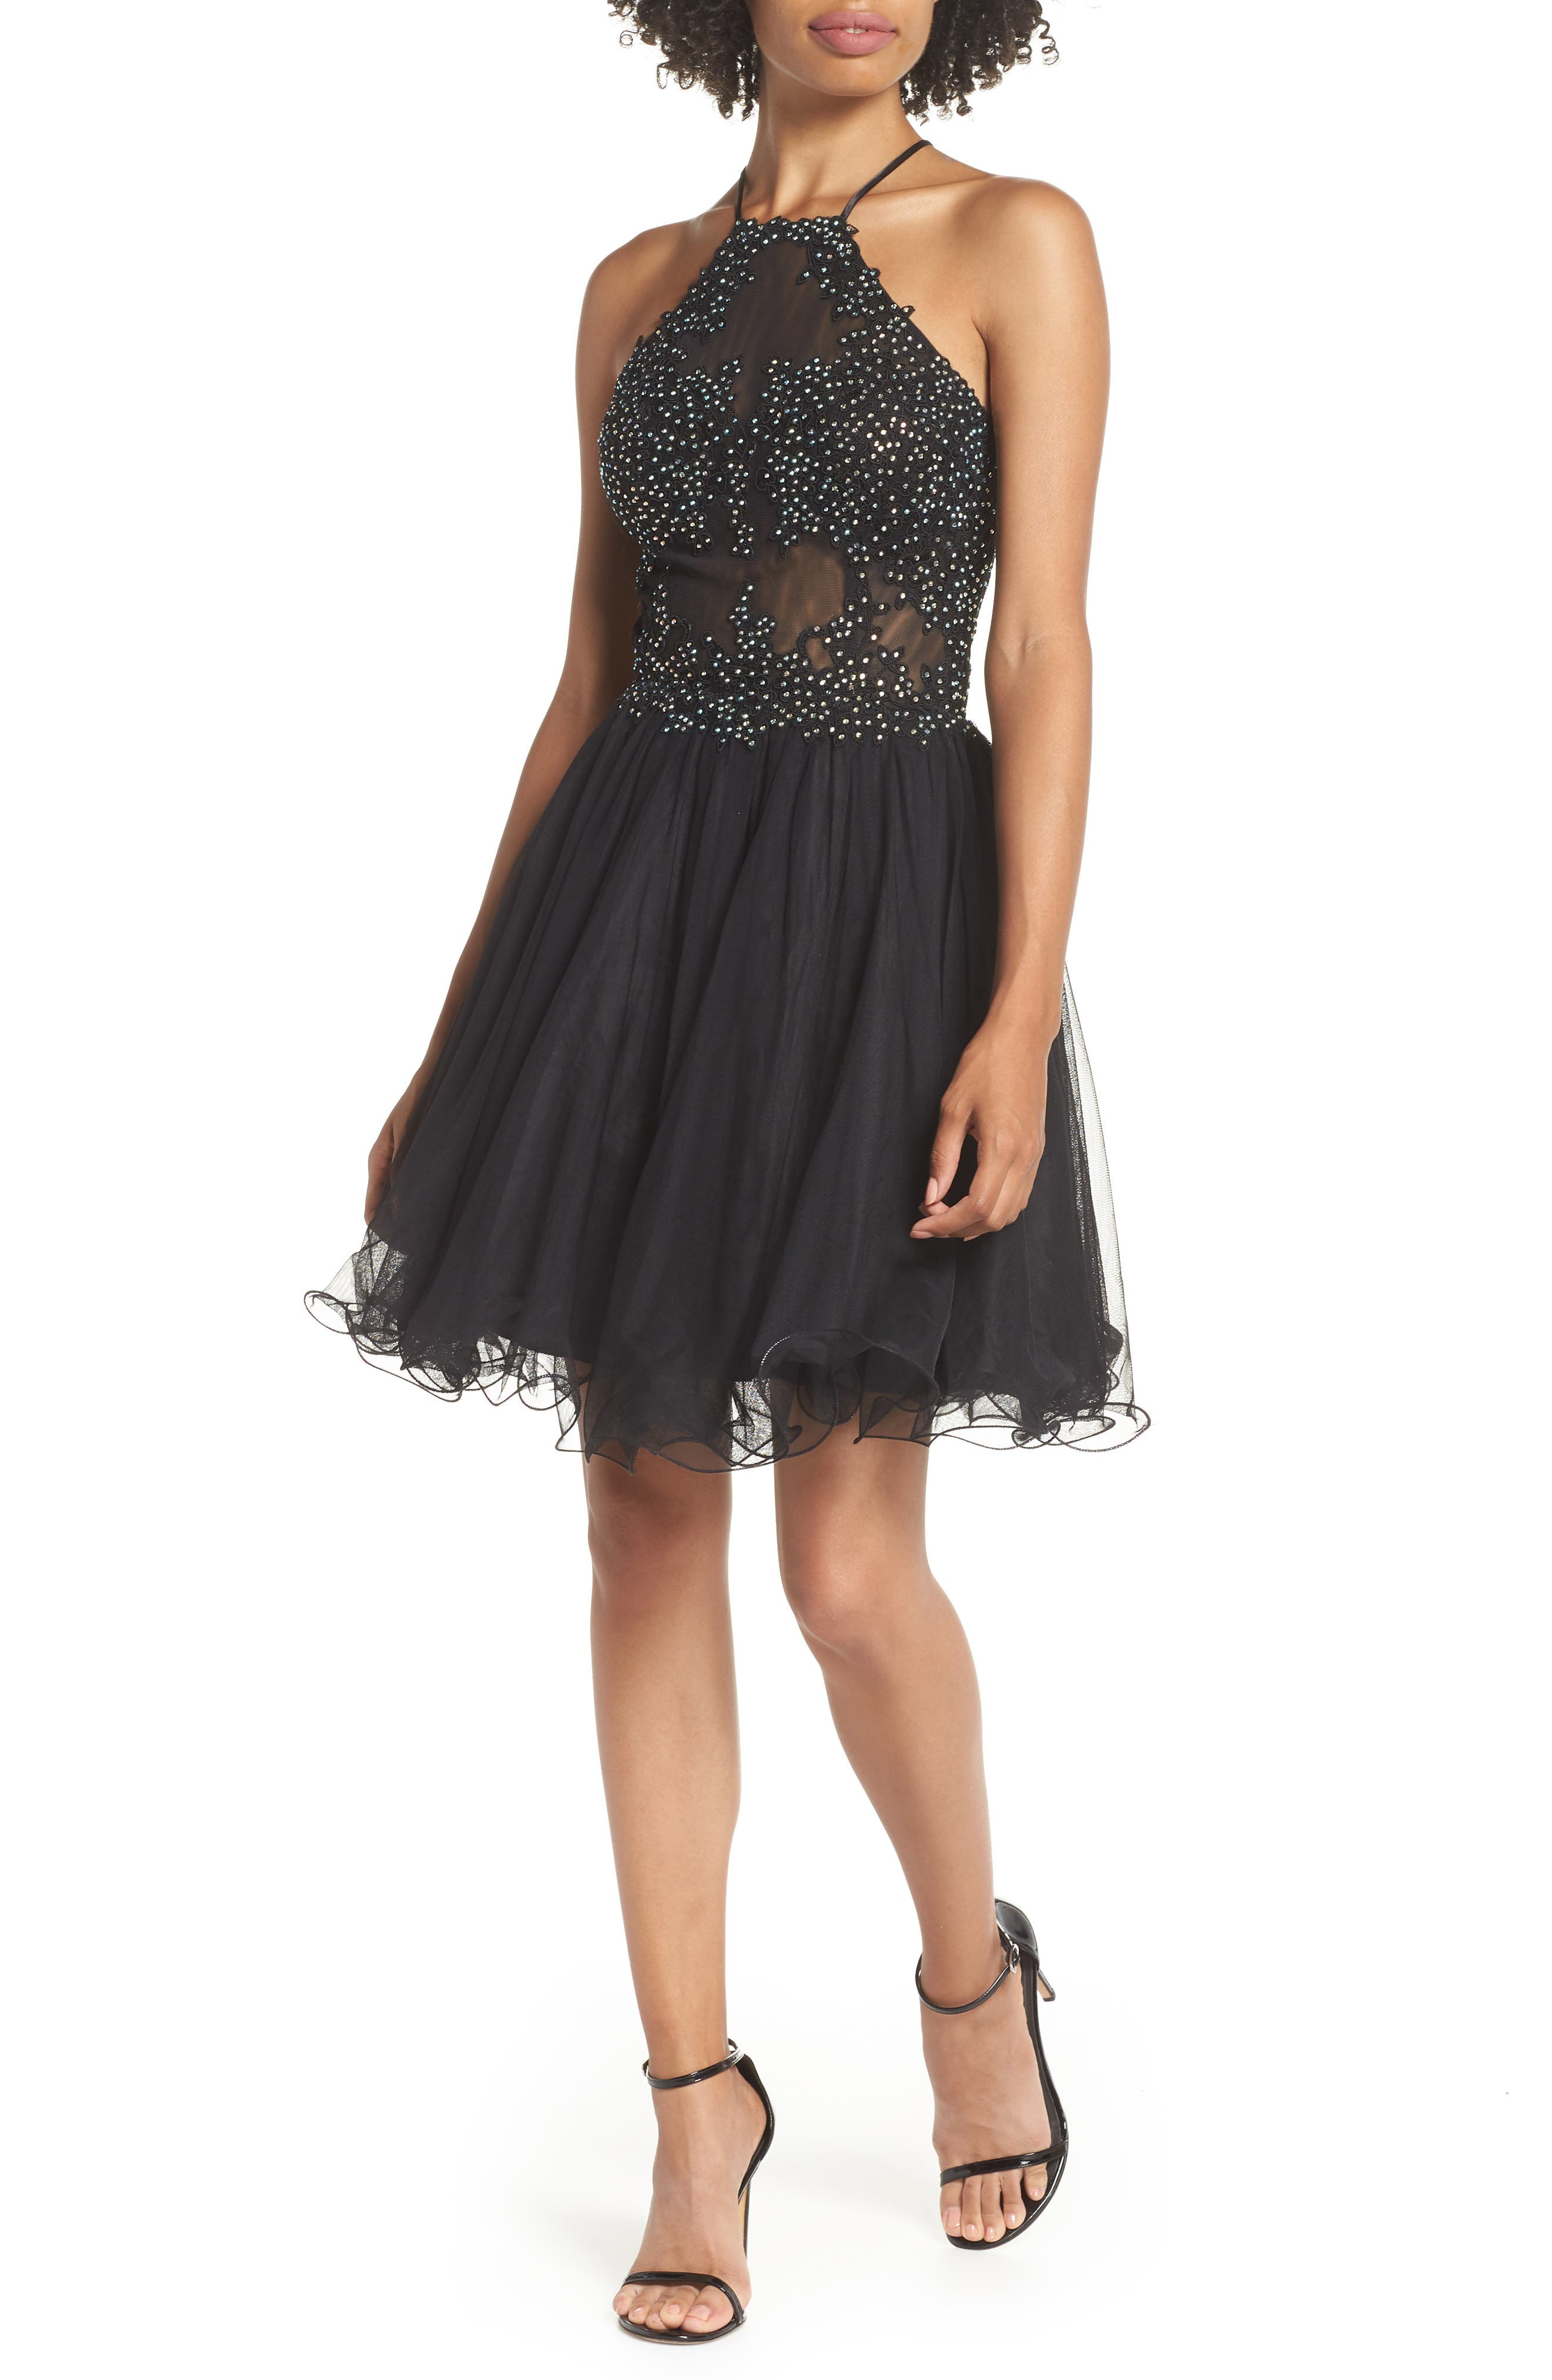 Blondie Nites Halter Neck Applique Mesh Party Dress, Black